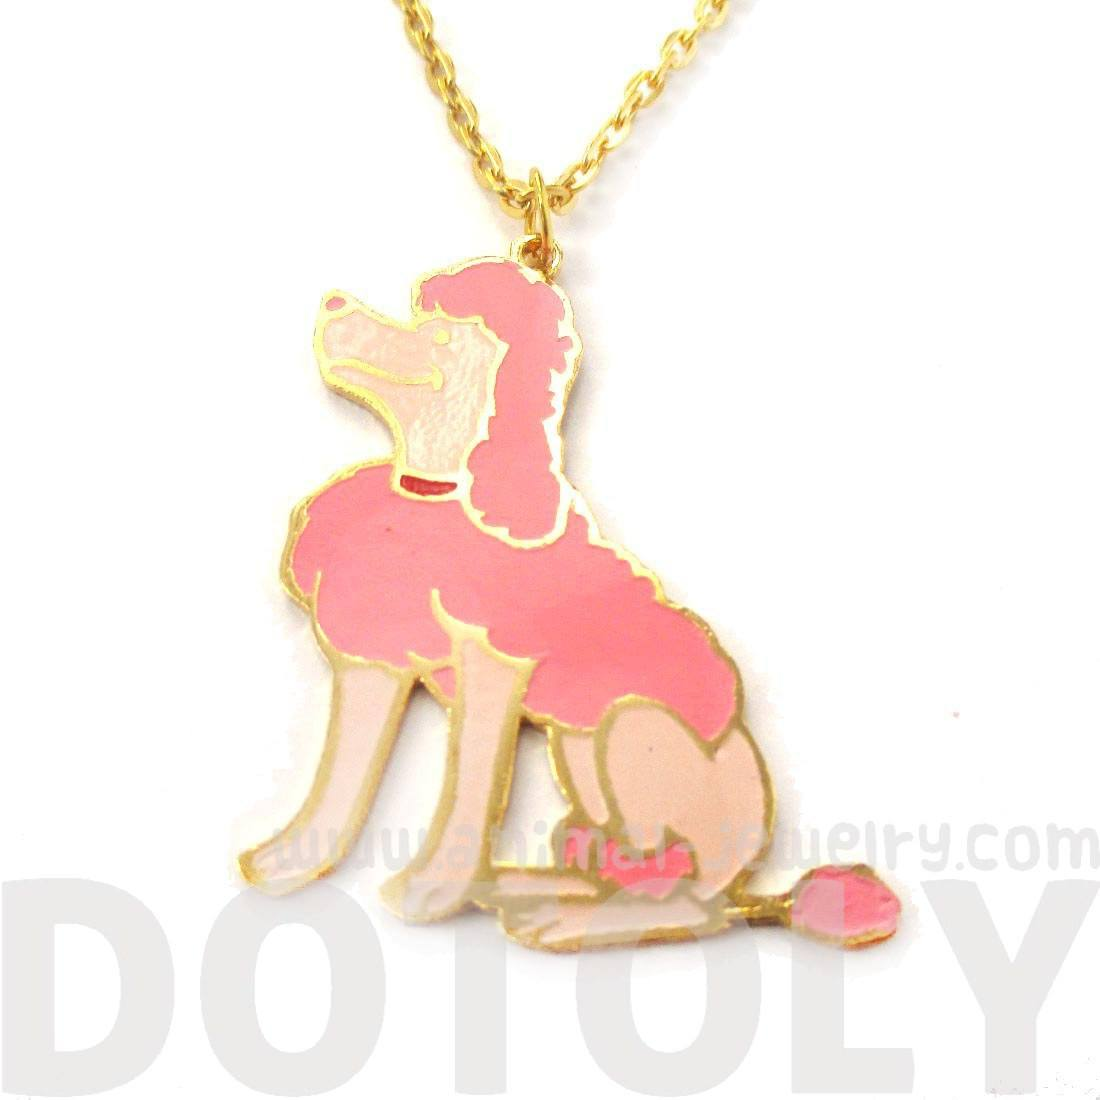 French Poodle Puppy Dog Shaped Limited Edition Animal Pendant Necklace